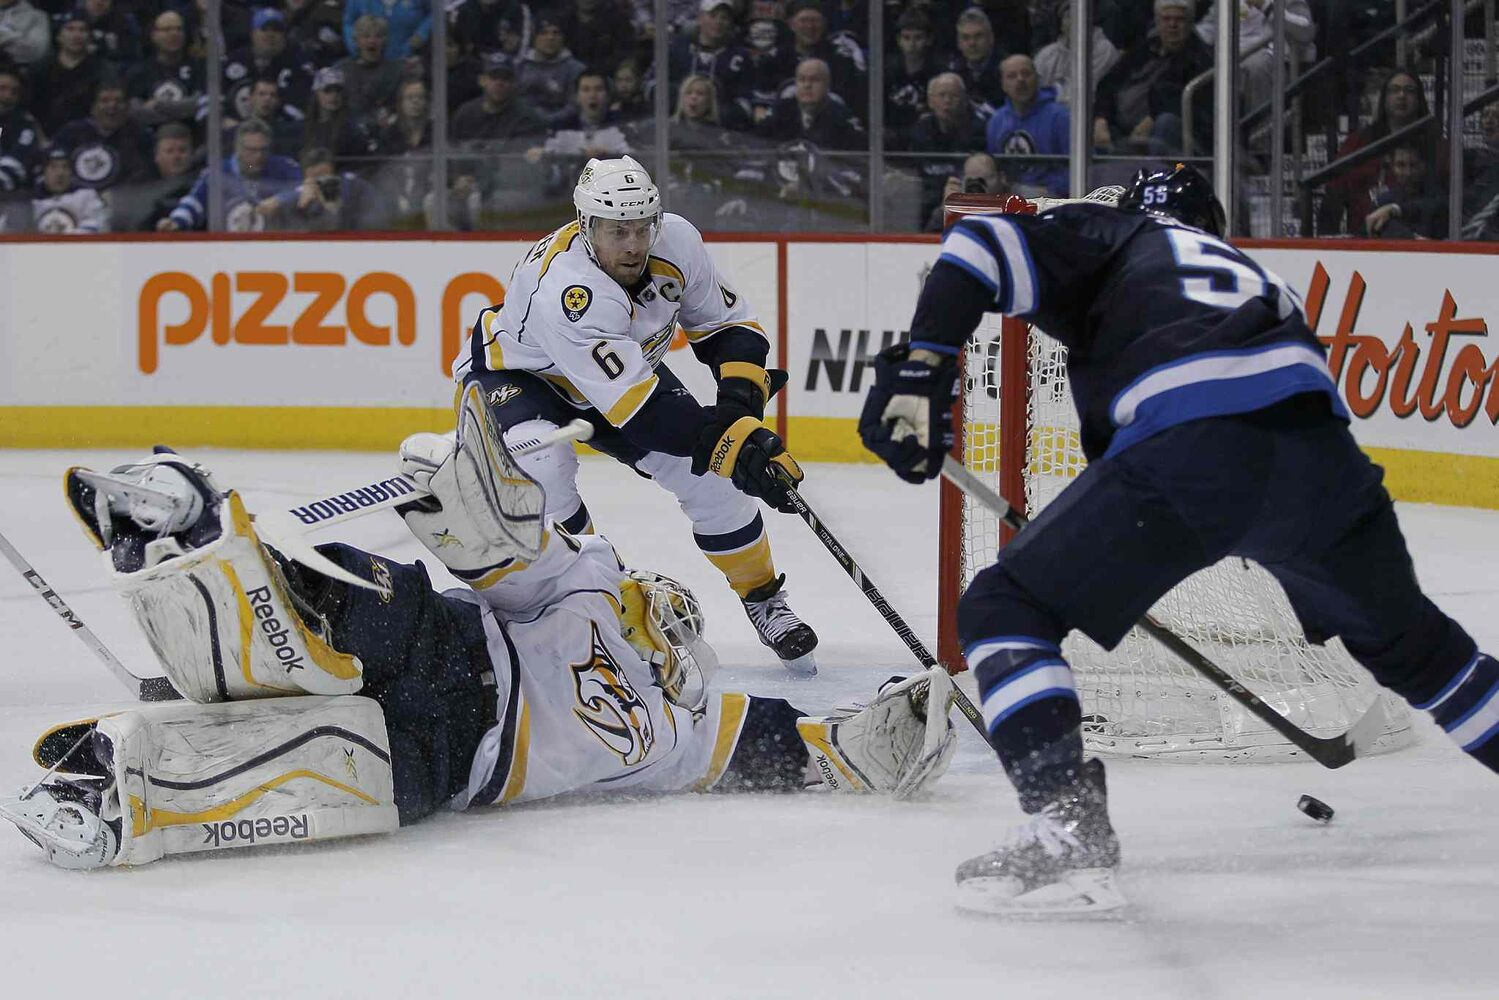 Winnipeg Jets' Mark Scheifele (55) gets around Nashville Predators' goaltender Carter Hutton (30) just before shooting the puck off Shea Weber (6) for the goal.